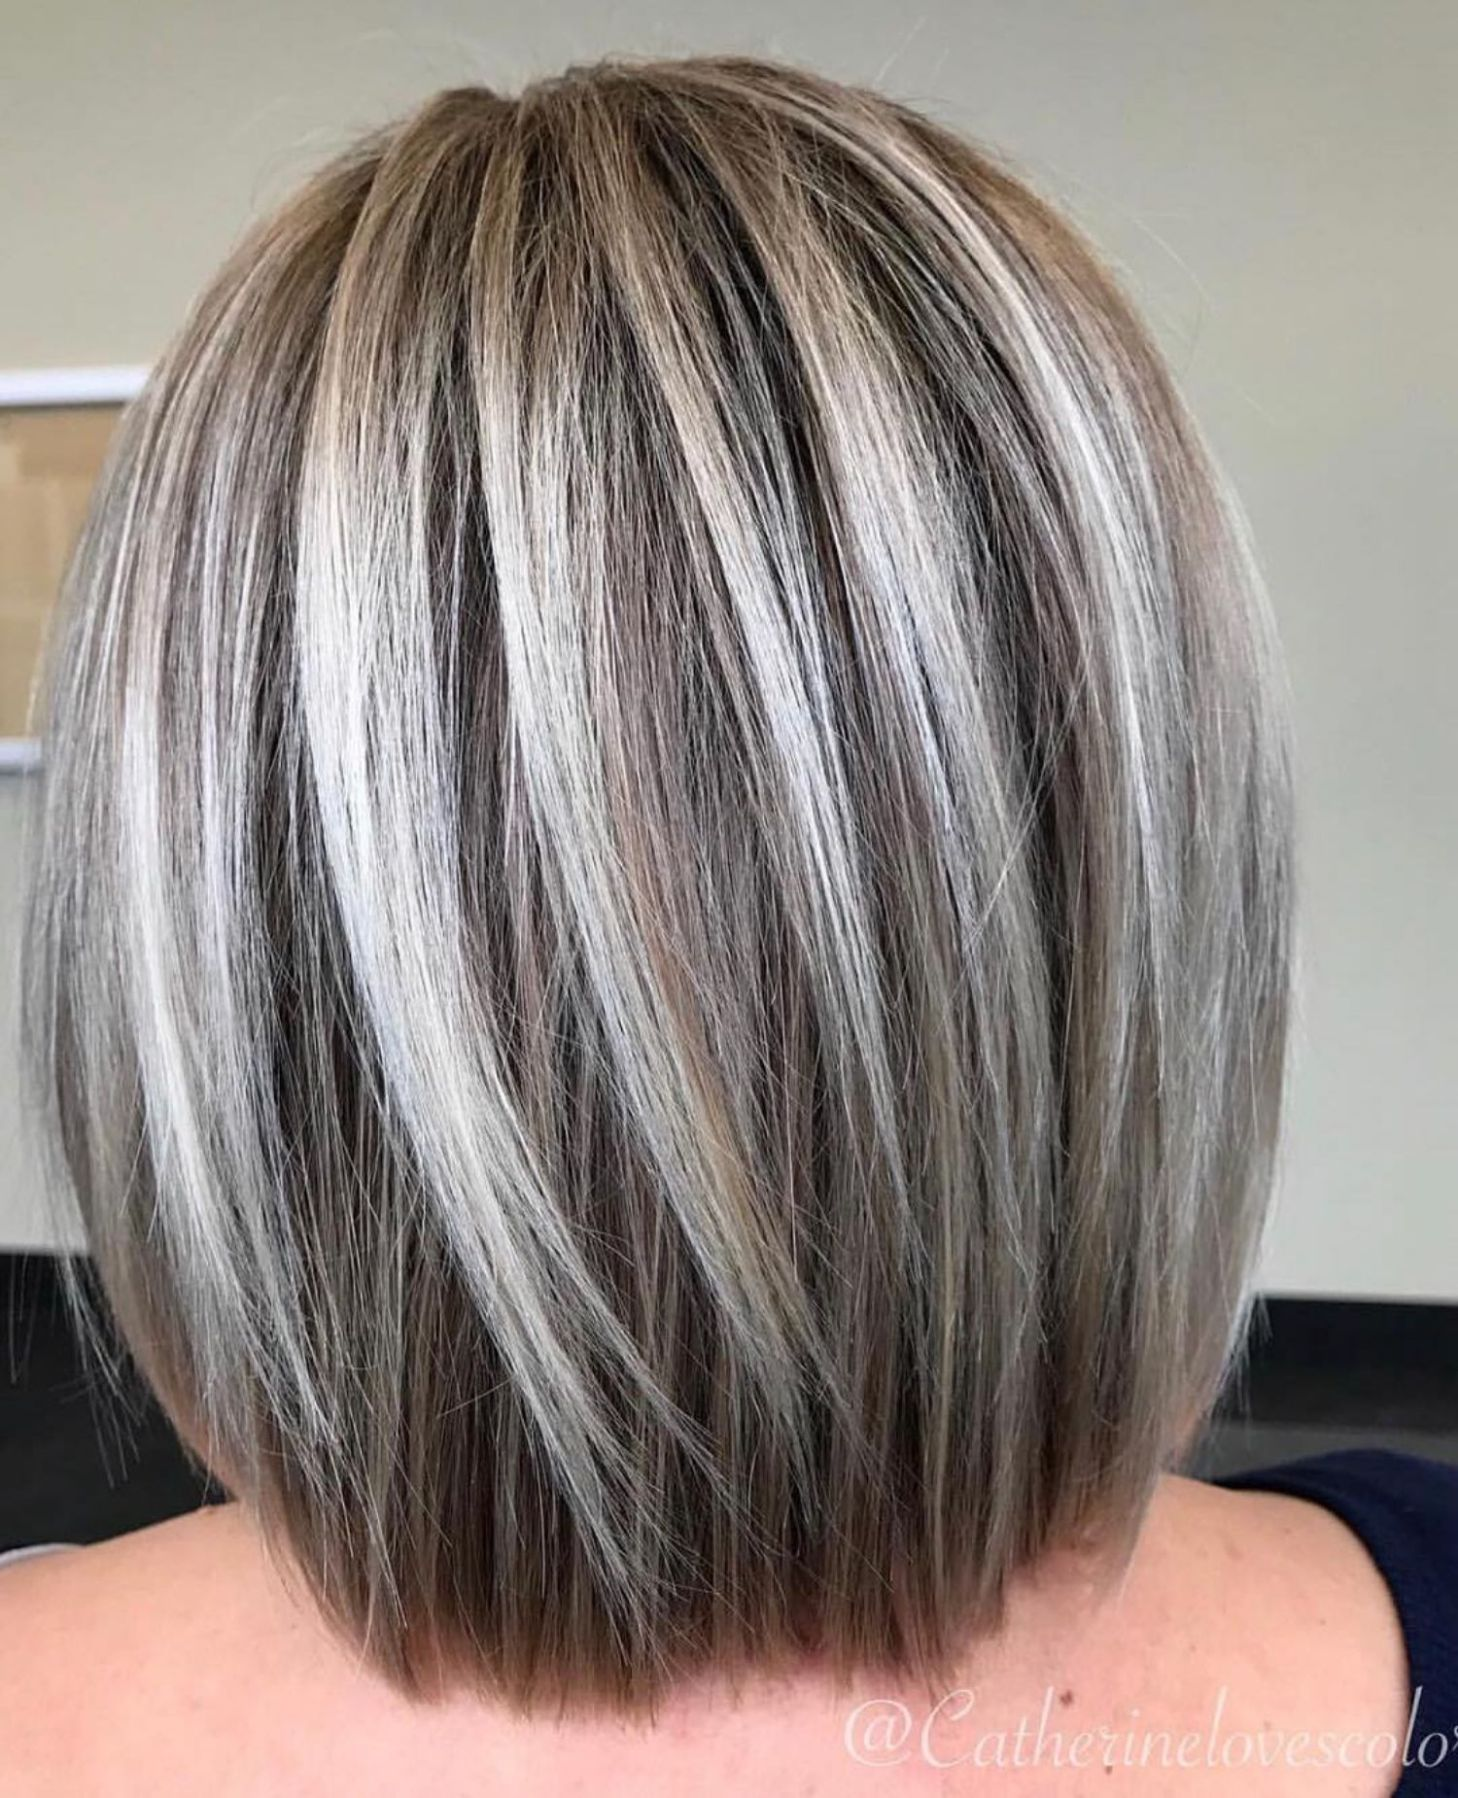 60 Fun And Flattering Medium Hairstyles For Women Silver Blonde Hair Medium Hair Styles Frosted Hair